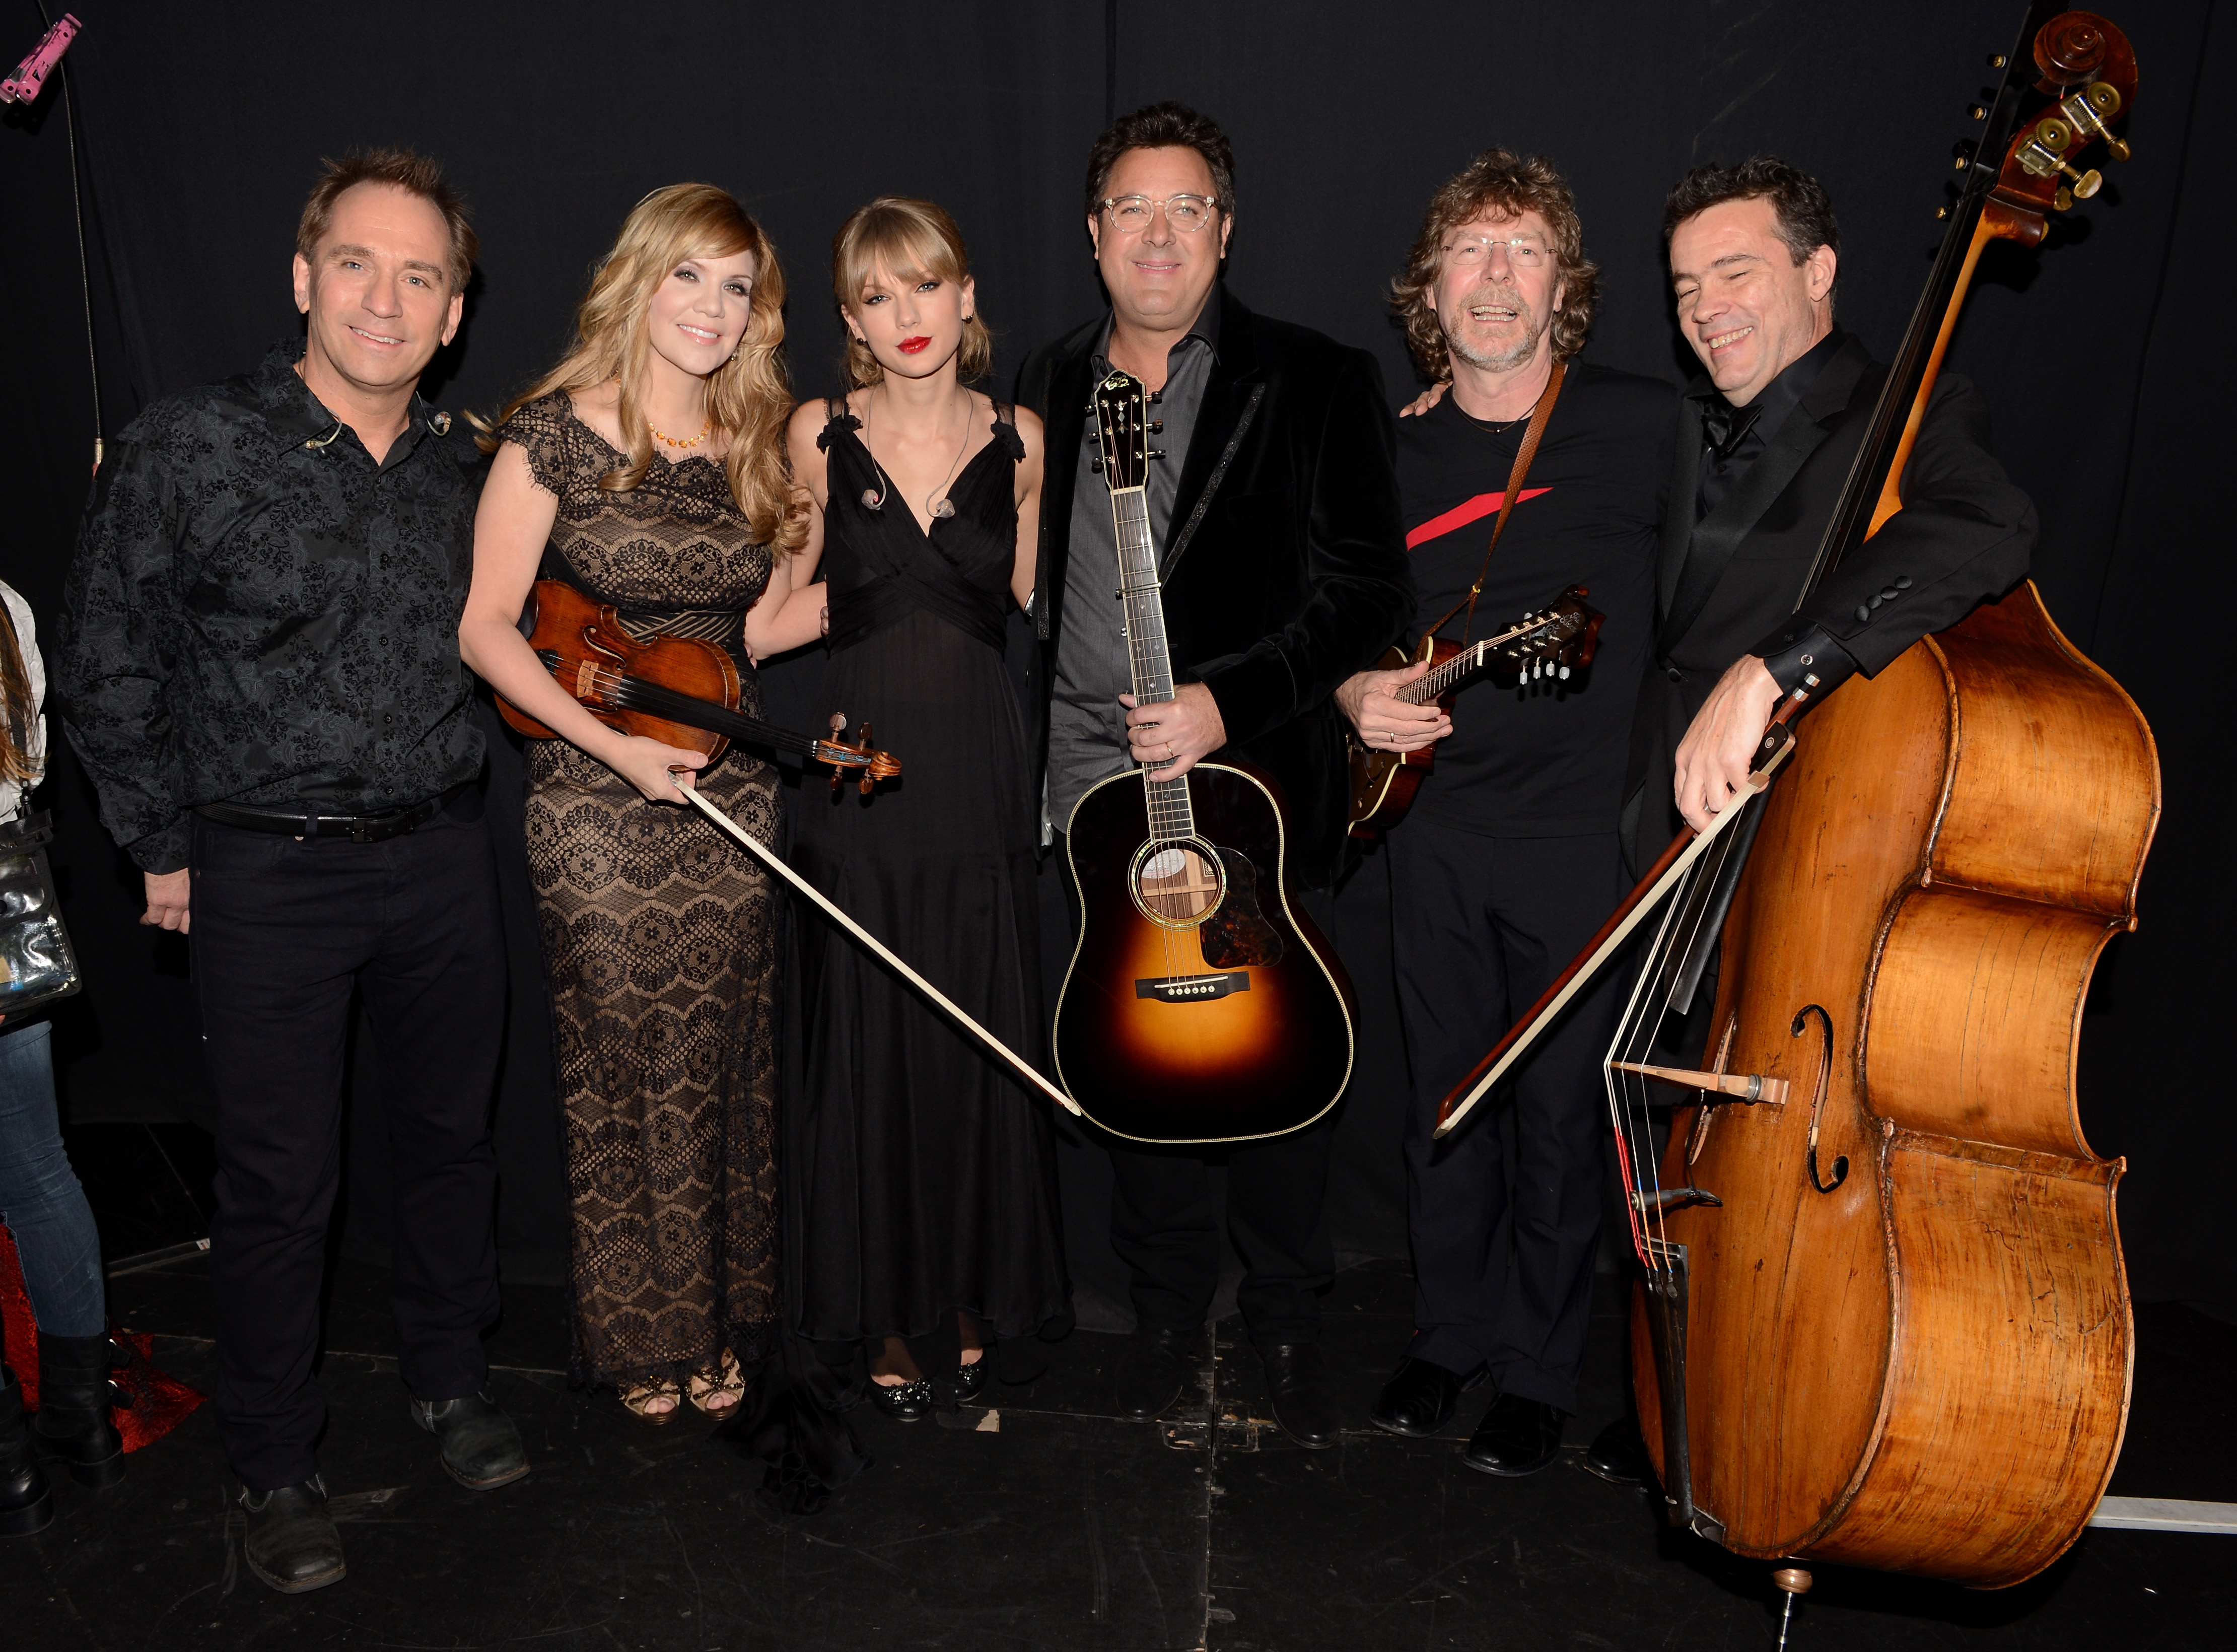 http://www.taylorpictures.net/albums/app/2013/cmaawards/020.jpg